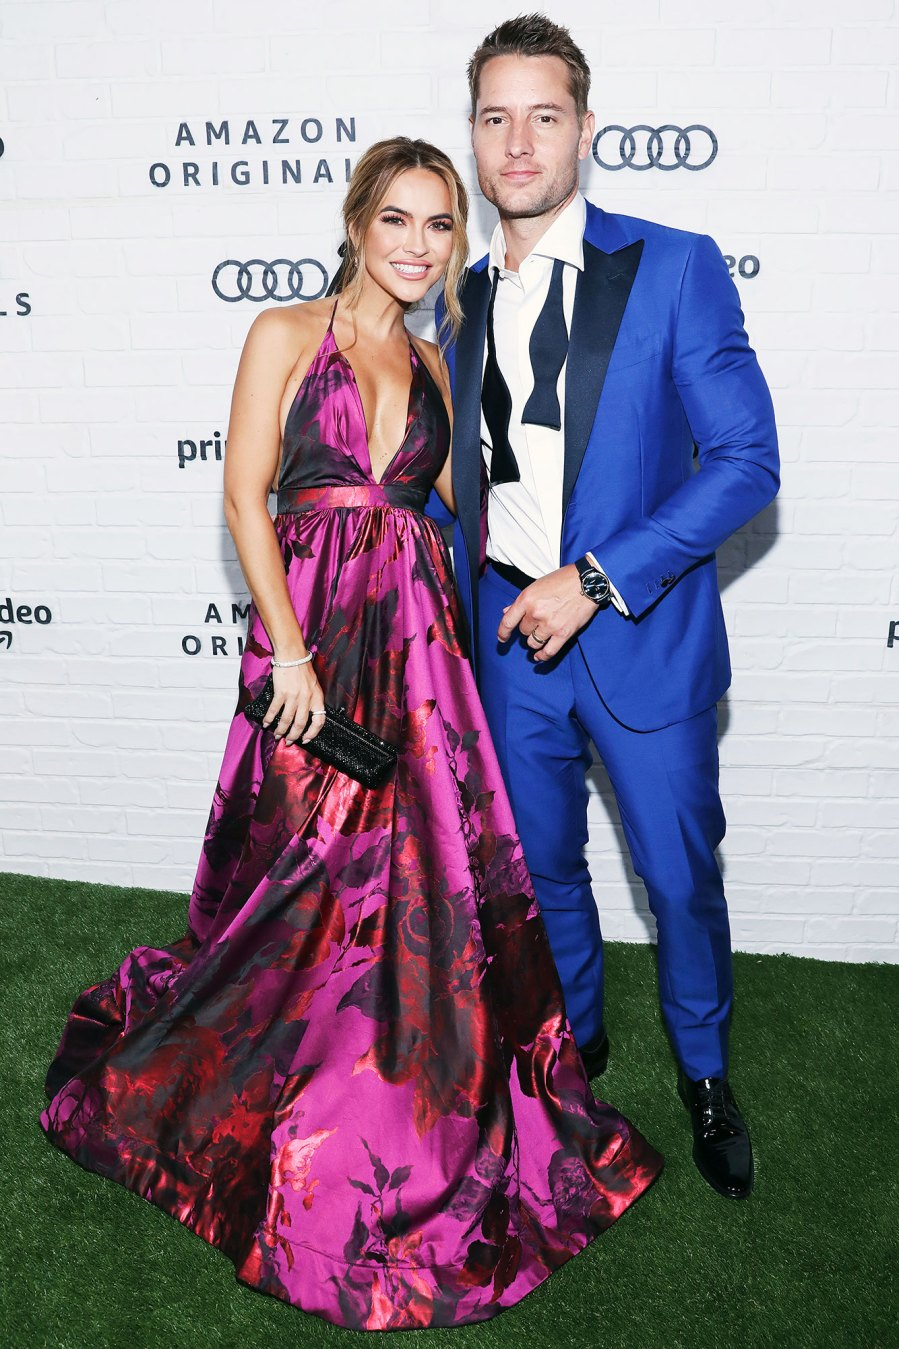 Chrishell Stause and Justin Hartley Amazon Emmys 2019 After Party